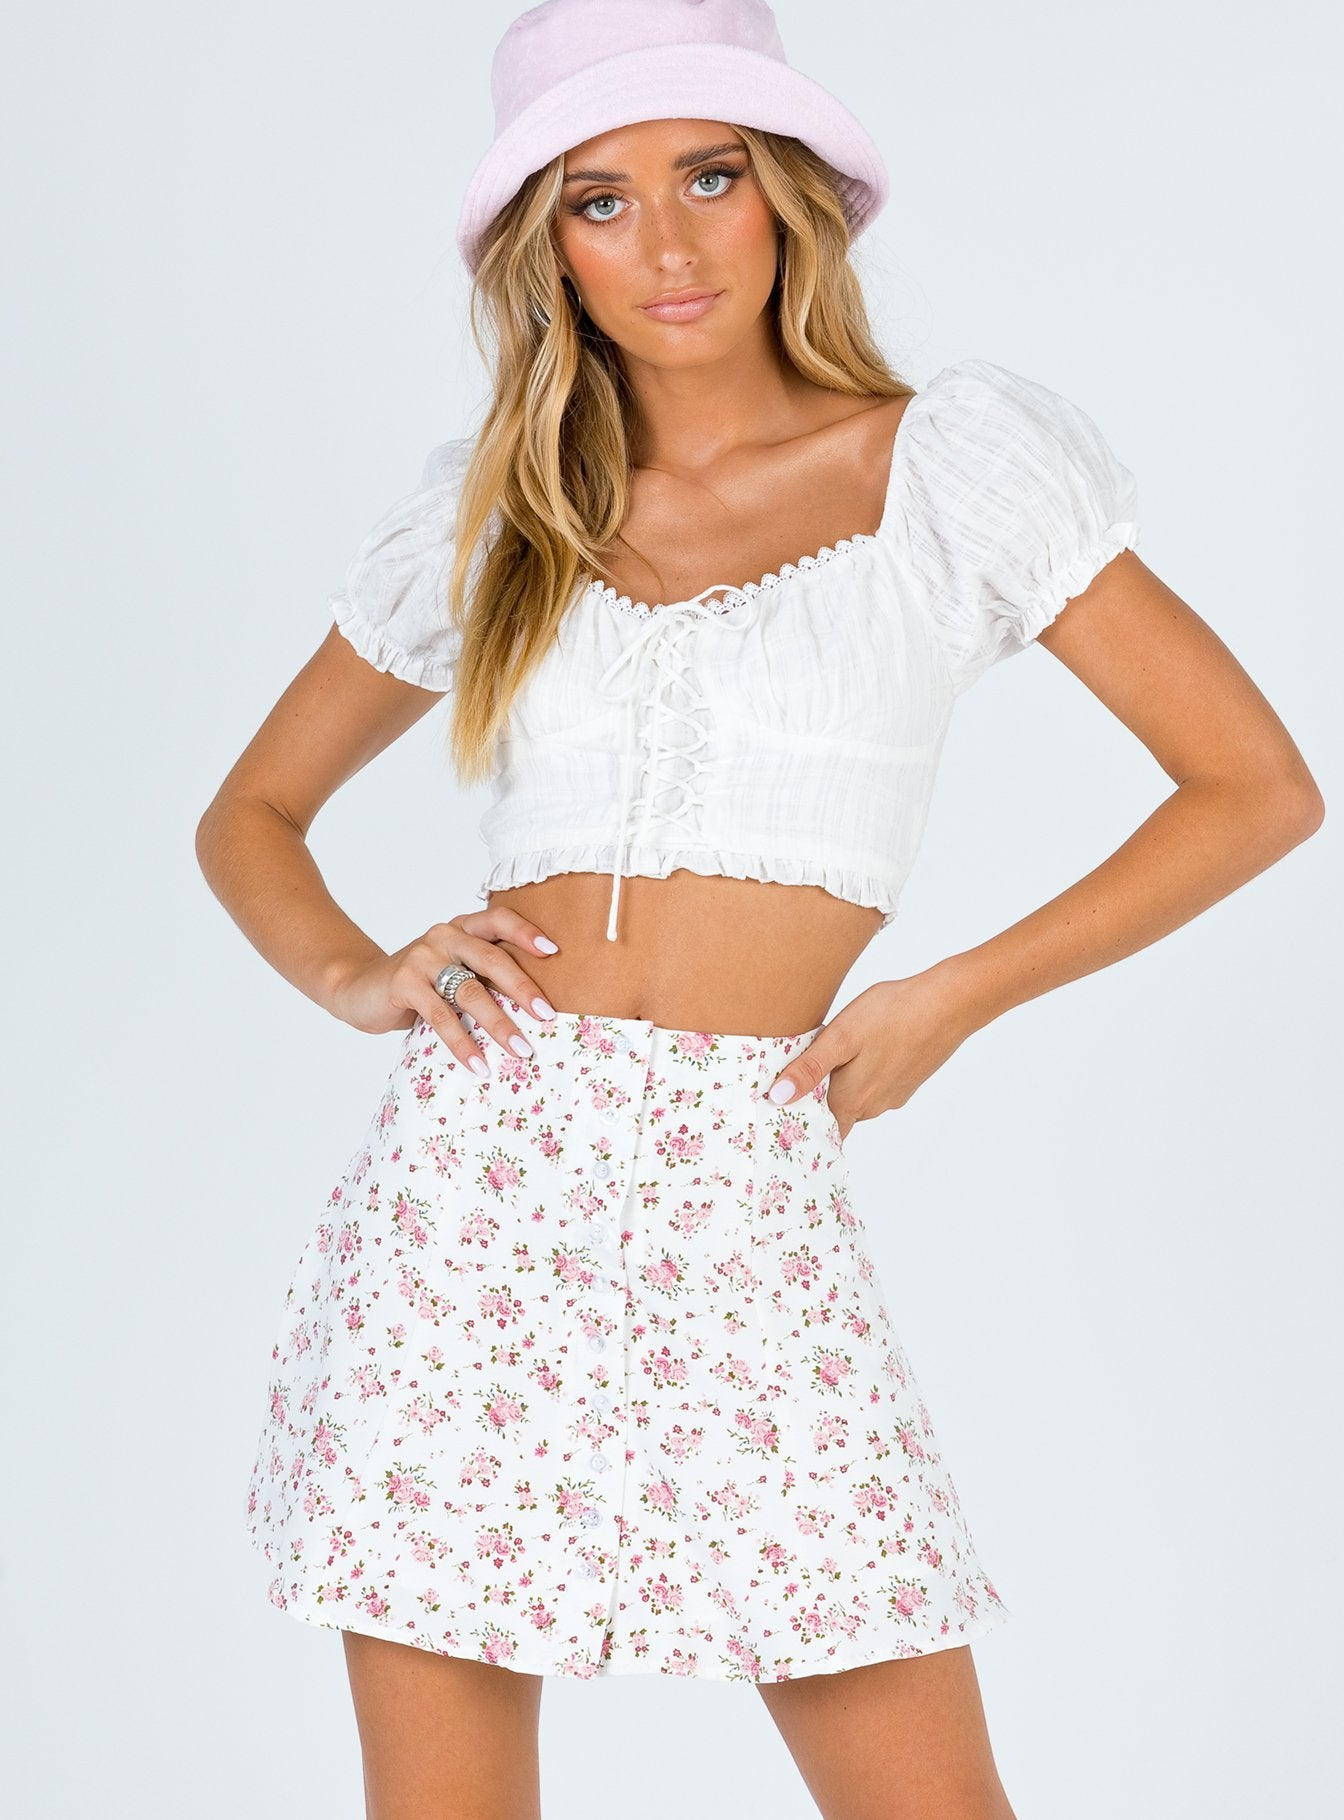 Merrina Mini Skirt